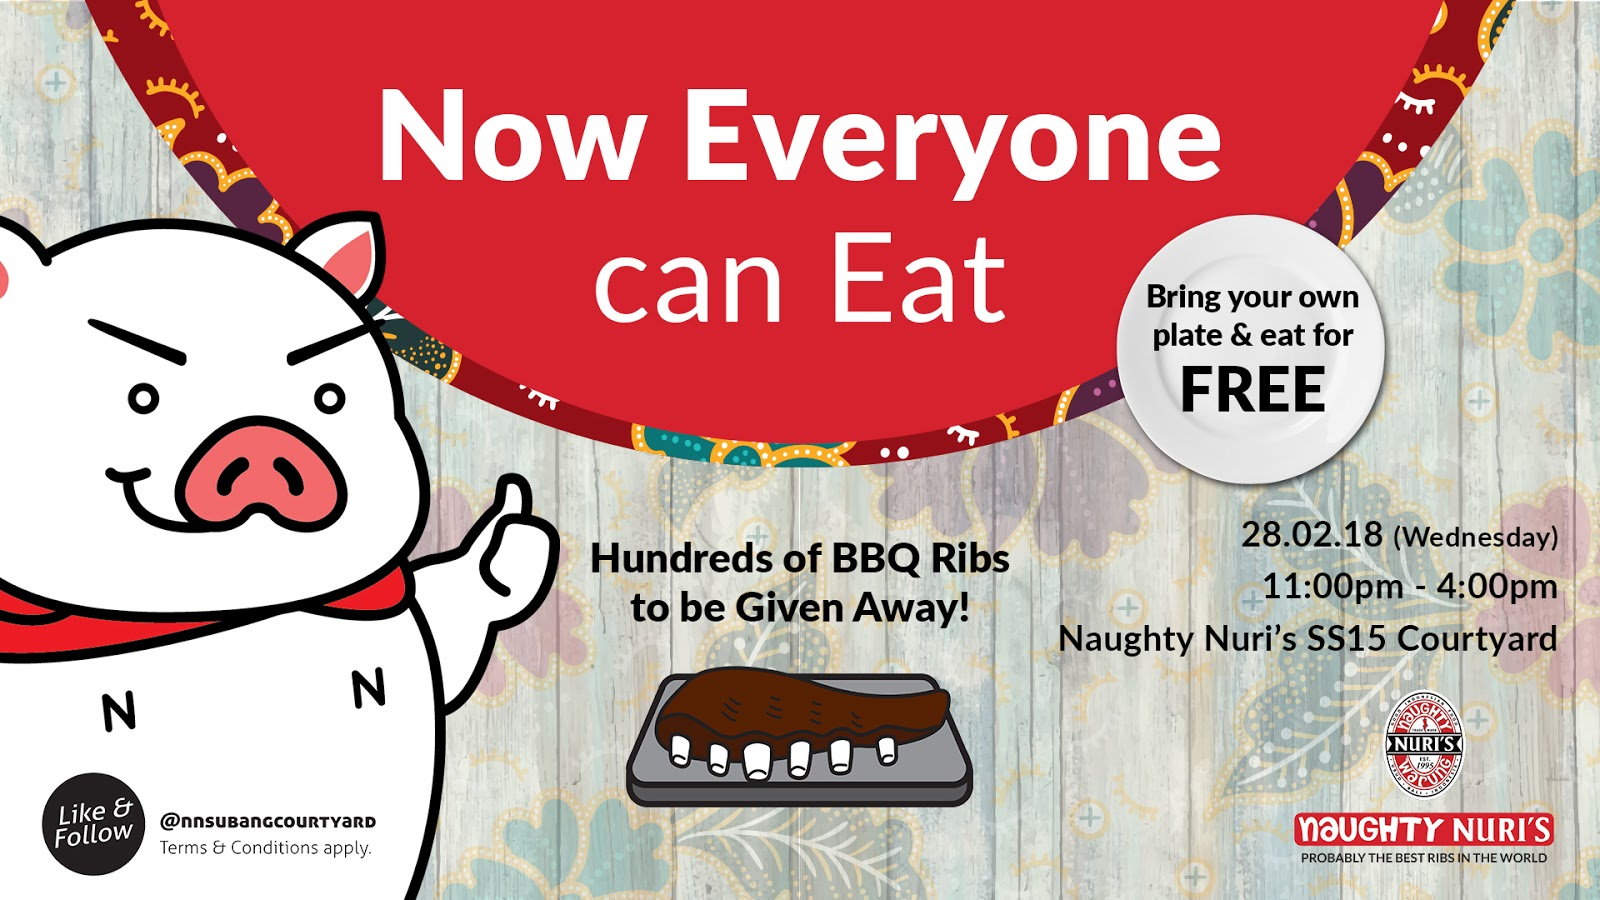 naughty nuri's: biggest ribs eating event